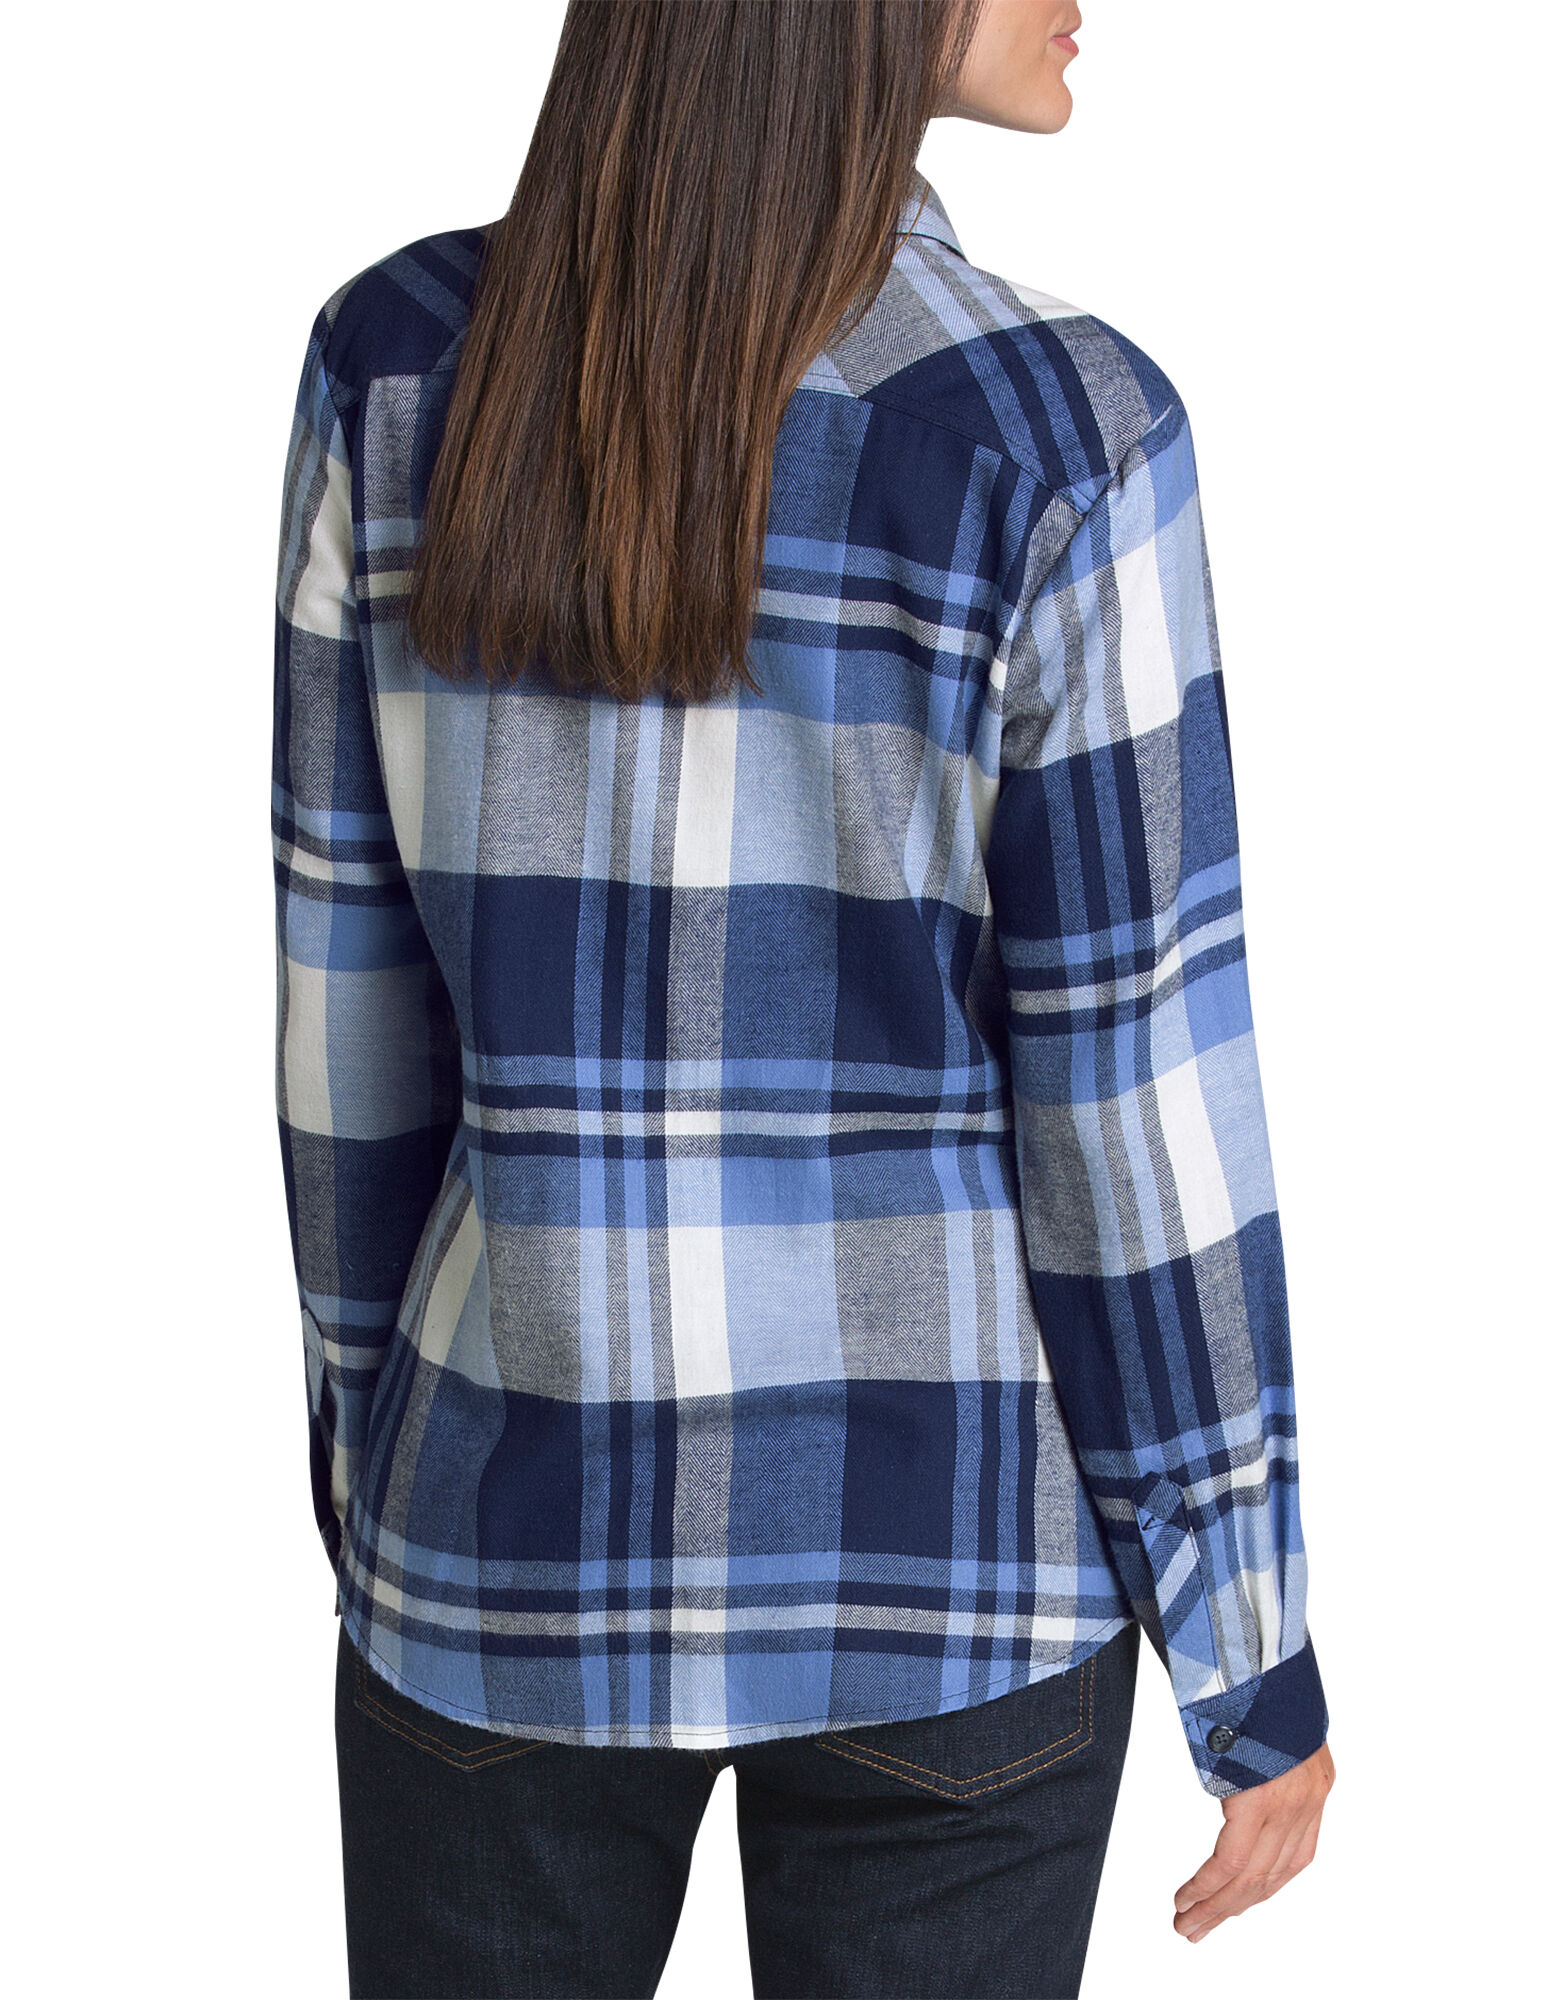 4f38538fc01 Womens Flannel Shirts Plaid – Rockwall Auction